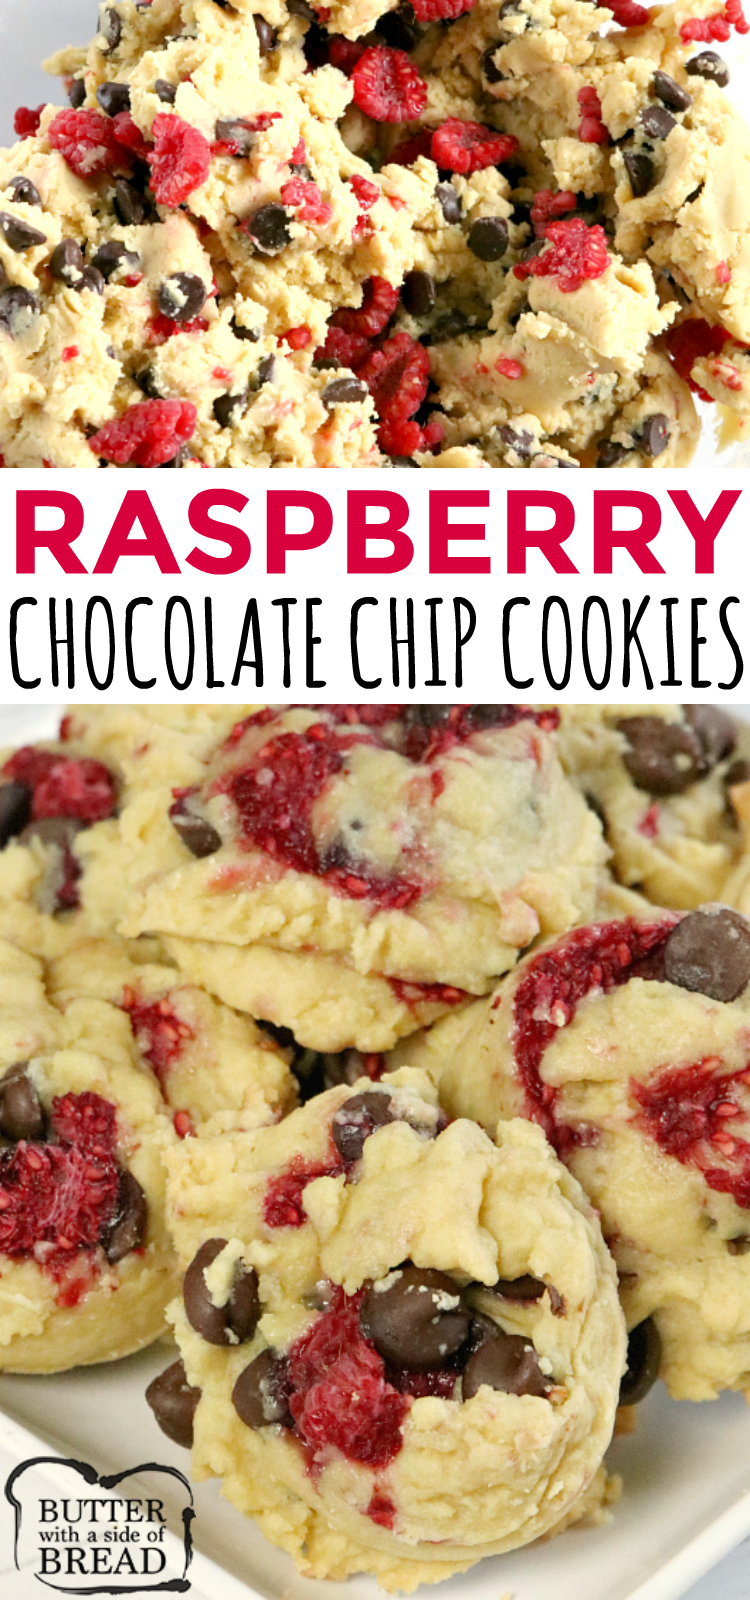 Raspberry Chocolate Chip Cookies are absolutely amazing! Adding fresh raspberries to a classic chocolate chip cookie recipe makes a delicious difference!